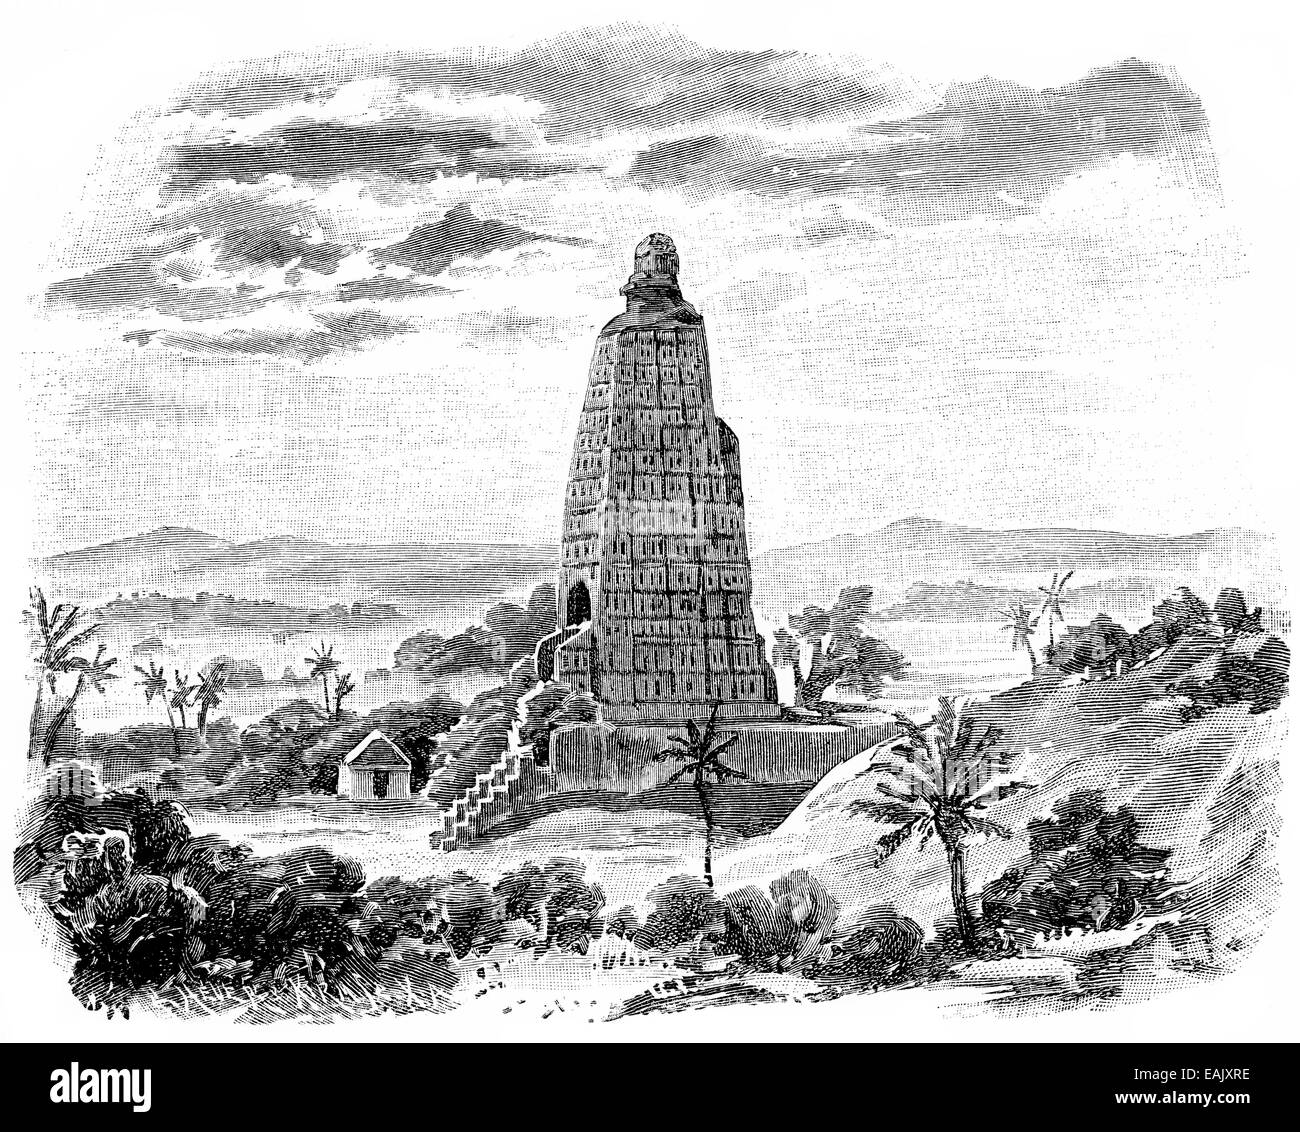 Historical print from the 19th century, the tomb of Buddha, Historische Druck aus dem 19. Jahrhundert, Grabmal des - Stock Image